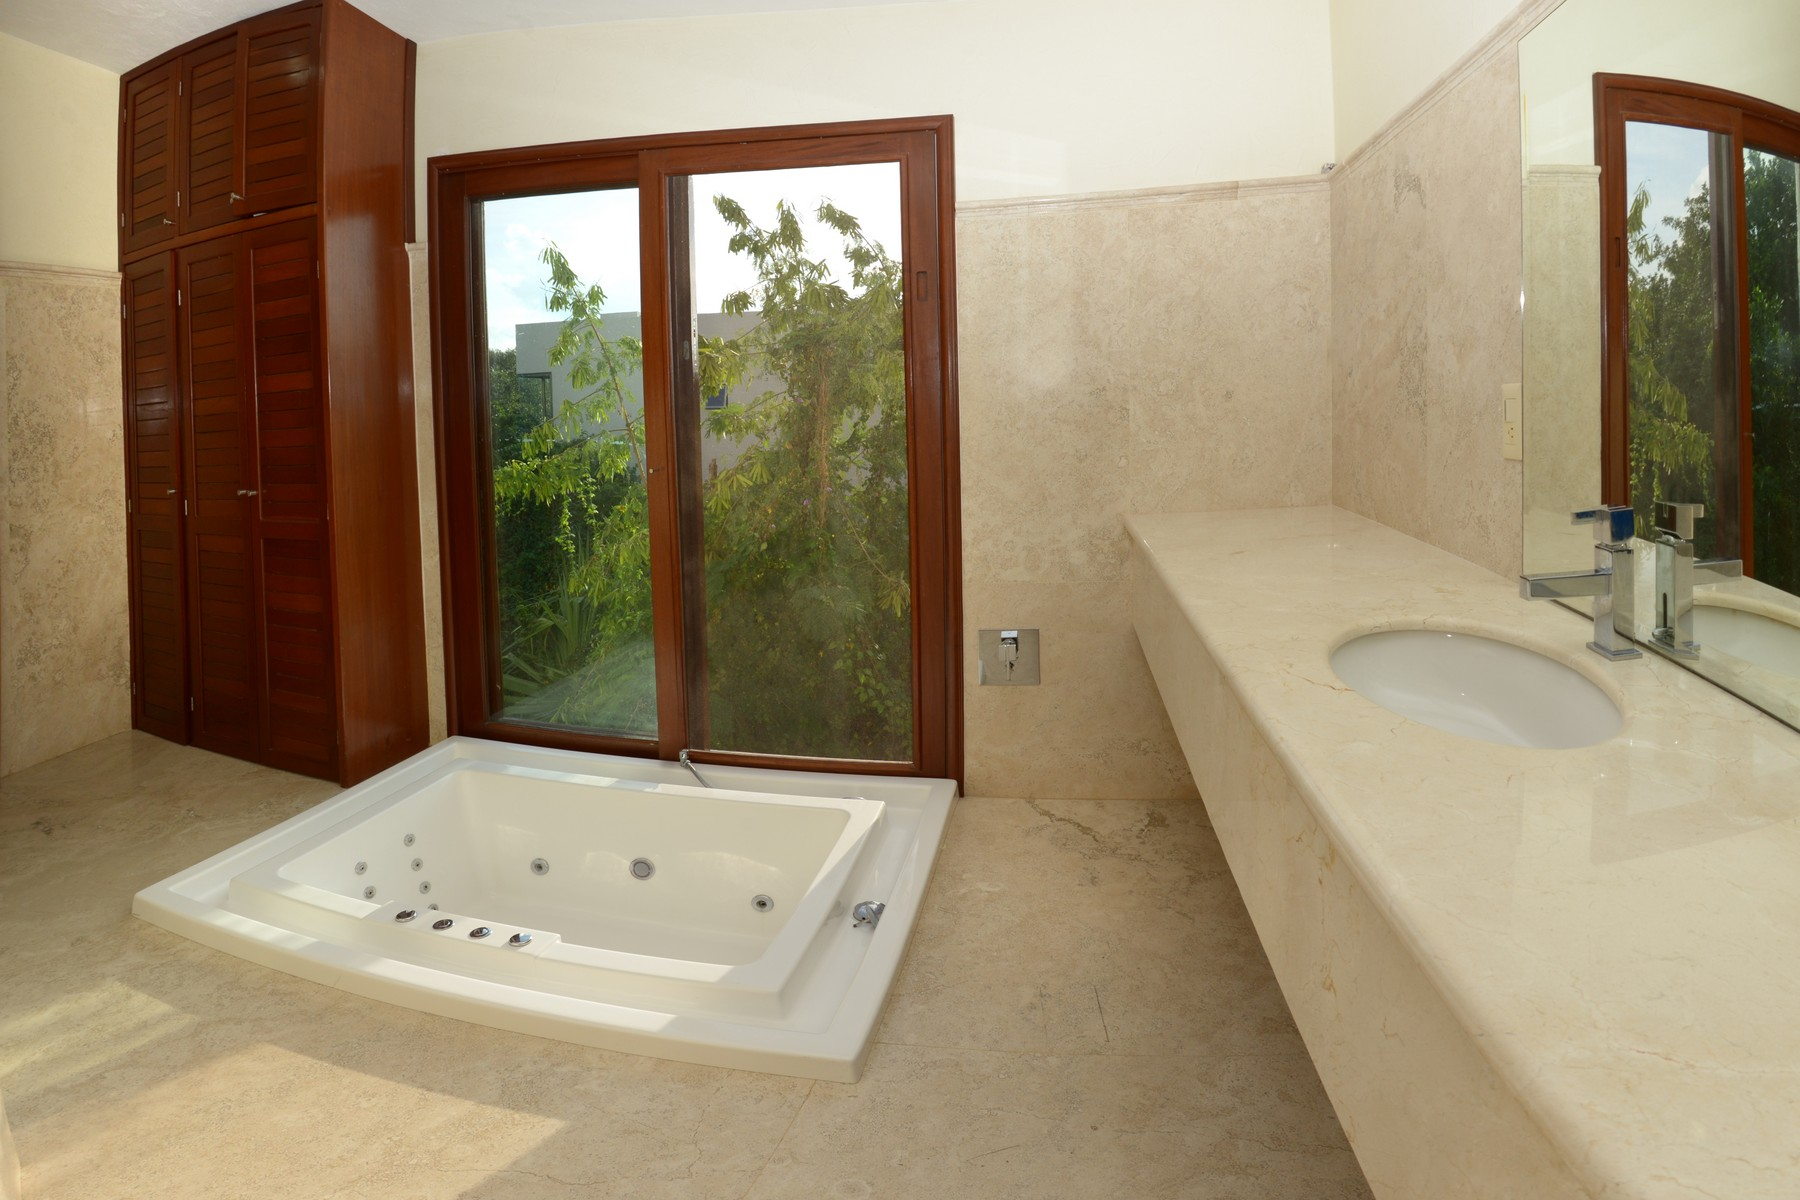 Additional photo for property listing at ROME HOME Retorno Xaman-Ha, Lol-Ha Ac Playacar Fase II Playa Del Carmen, Quintana Roo 77710 Mexico